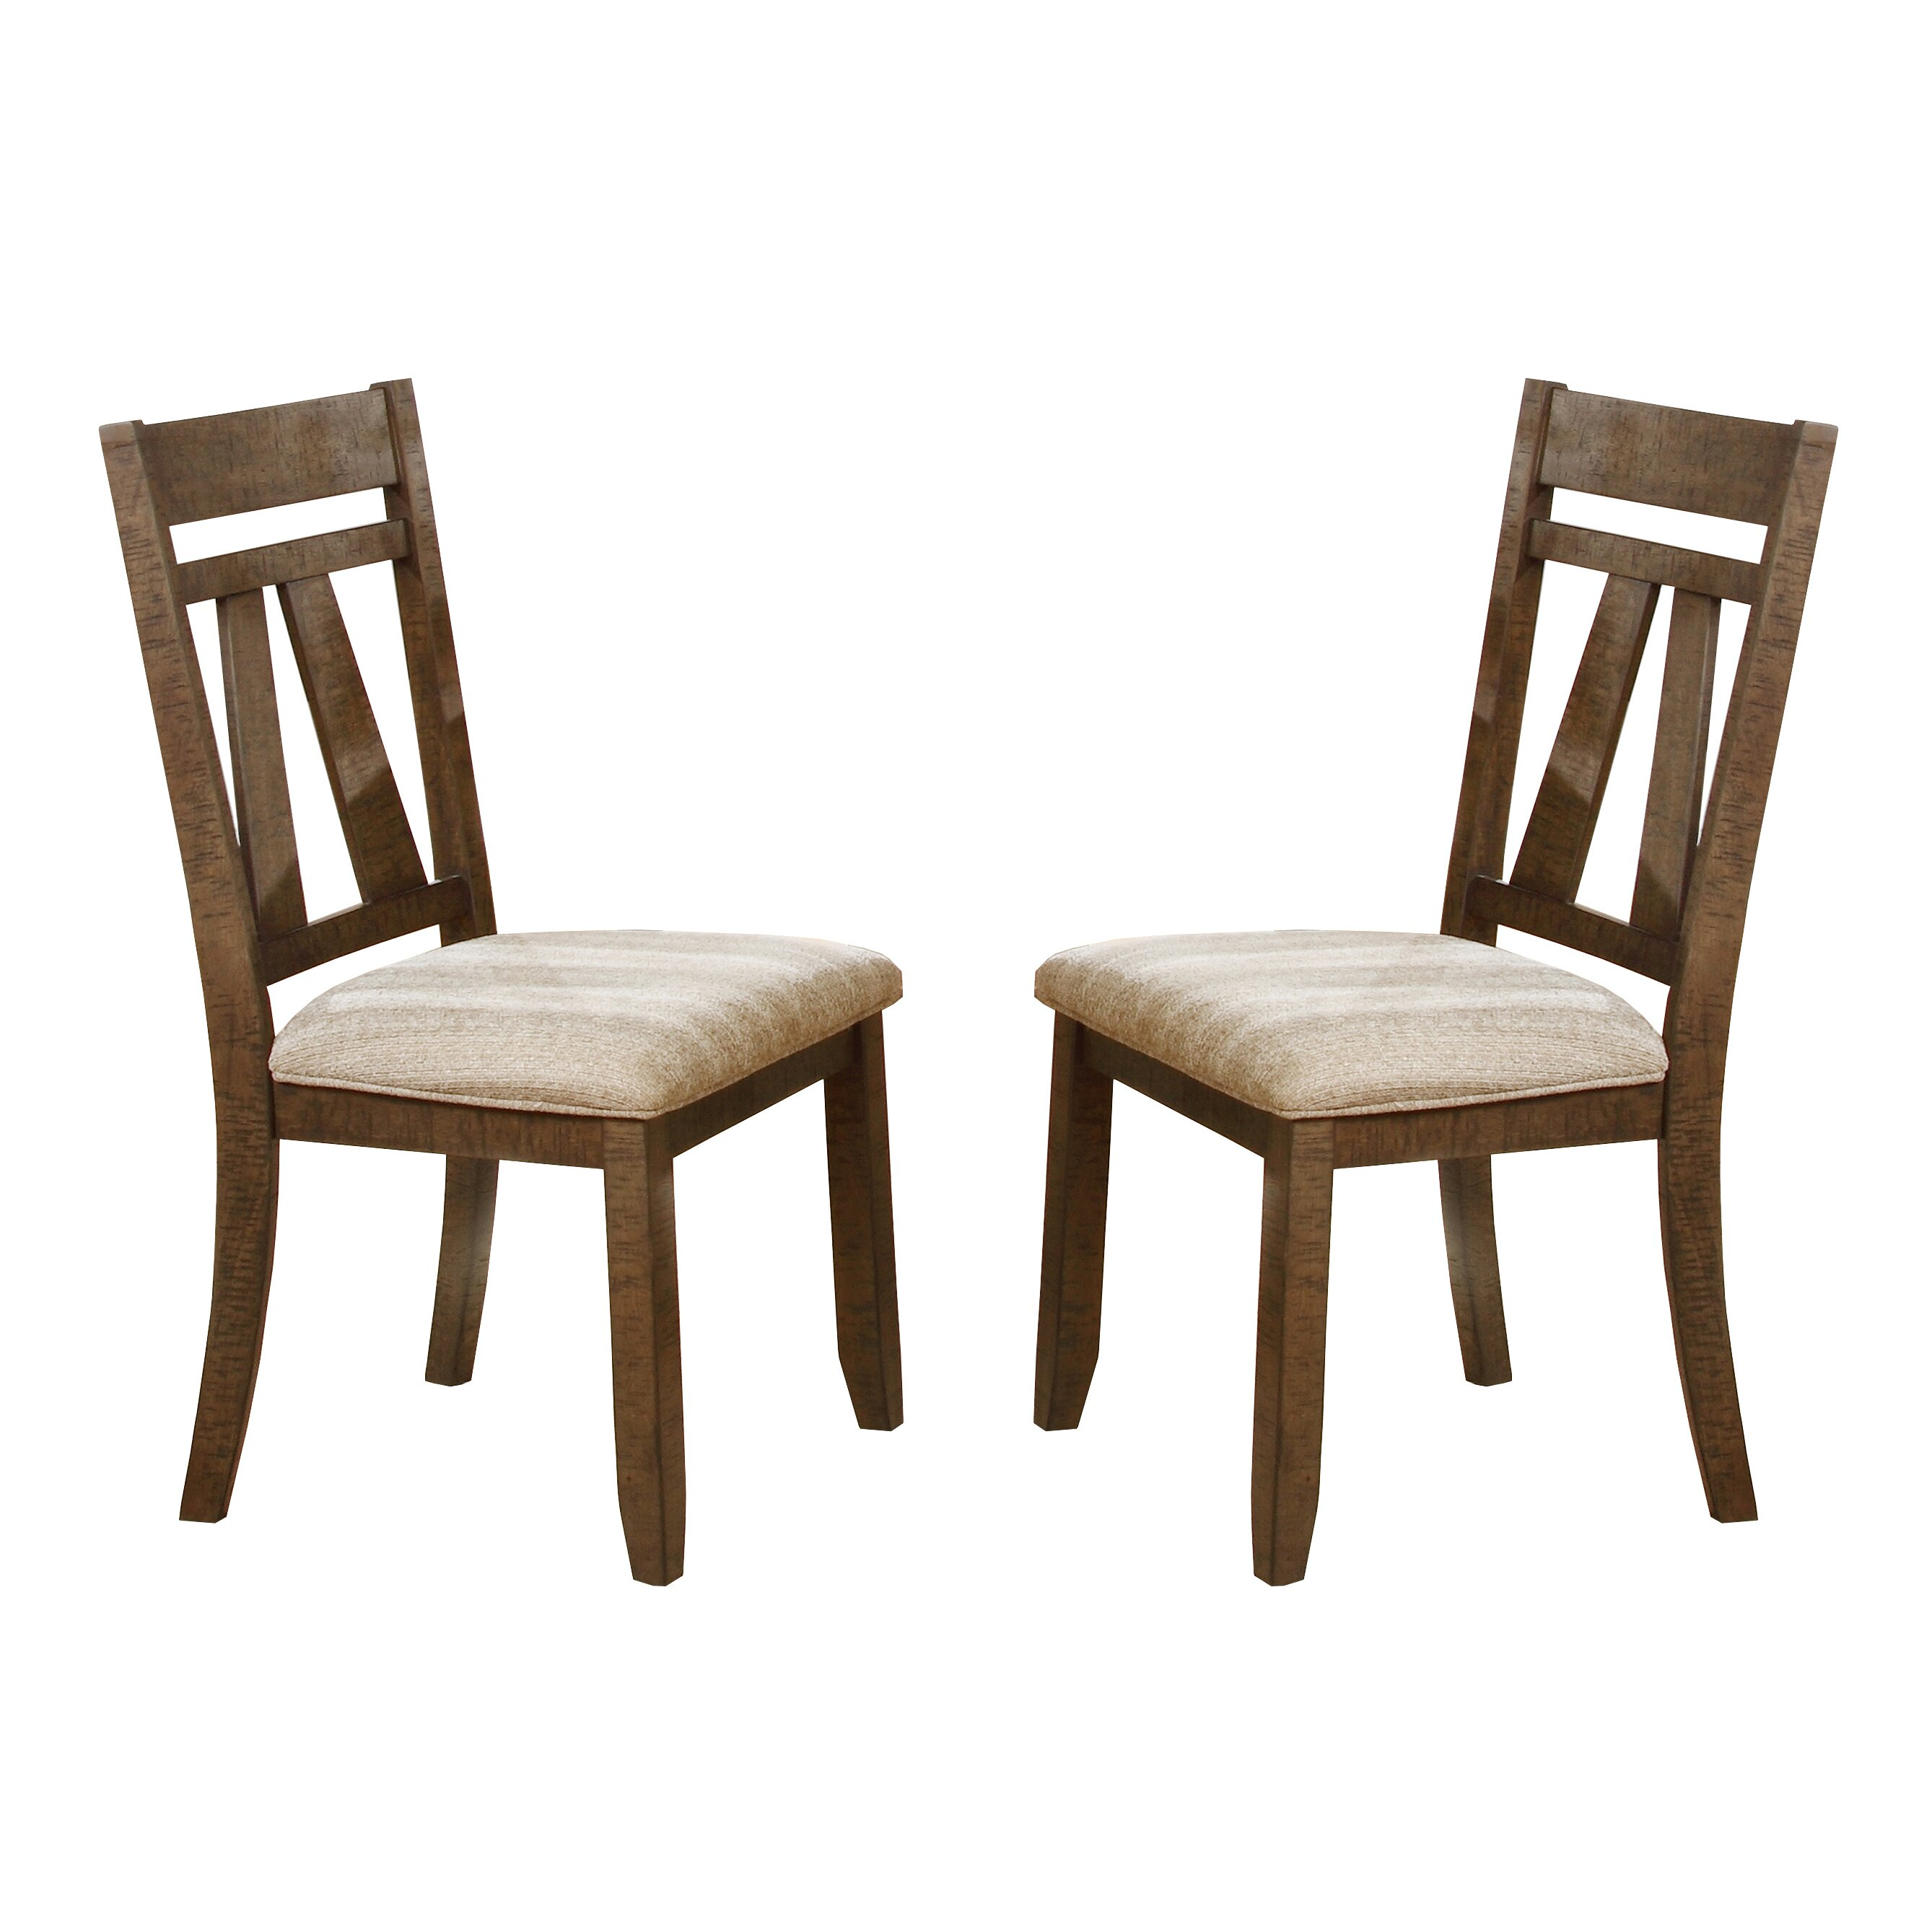 Laurel foundry modern farmhouse diana side chair wayfair for Modern farmhouse dining chairs